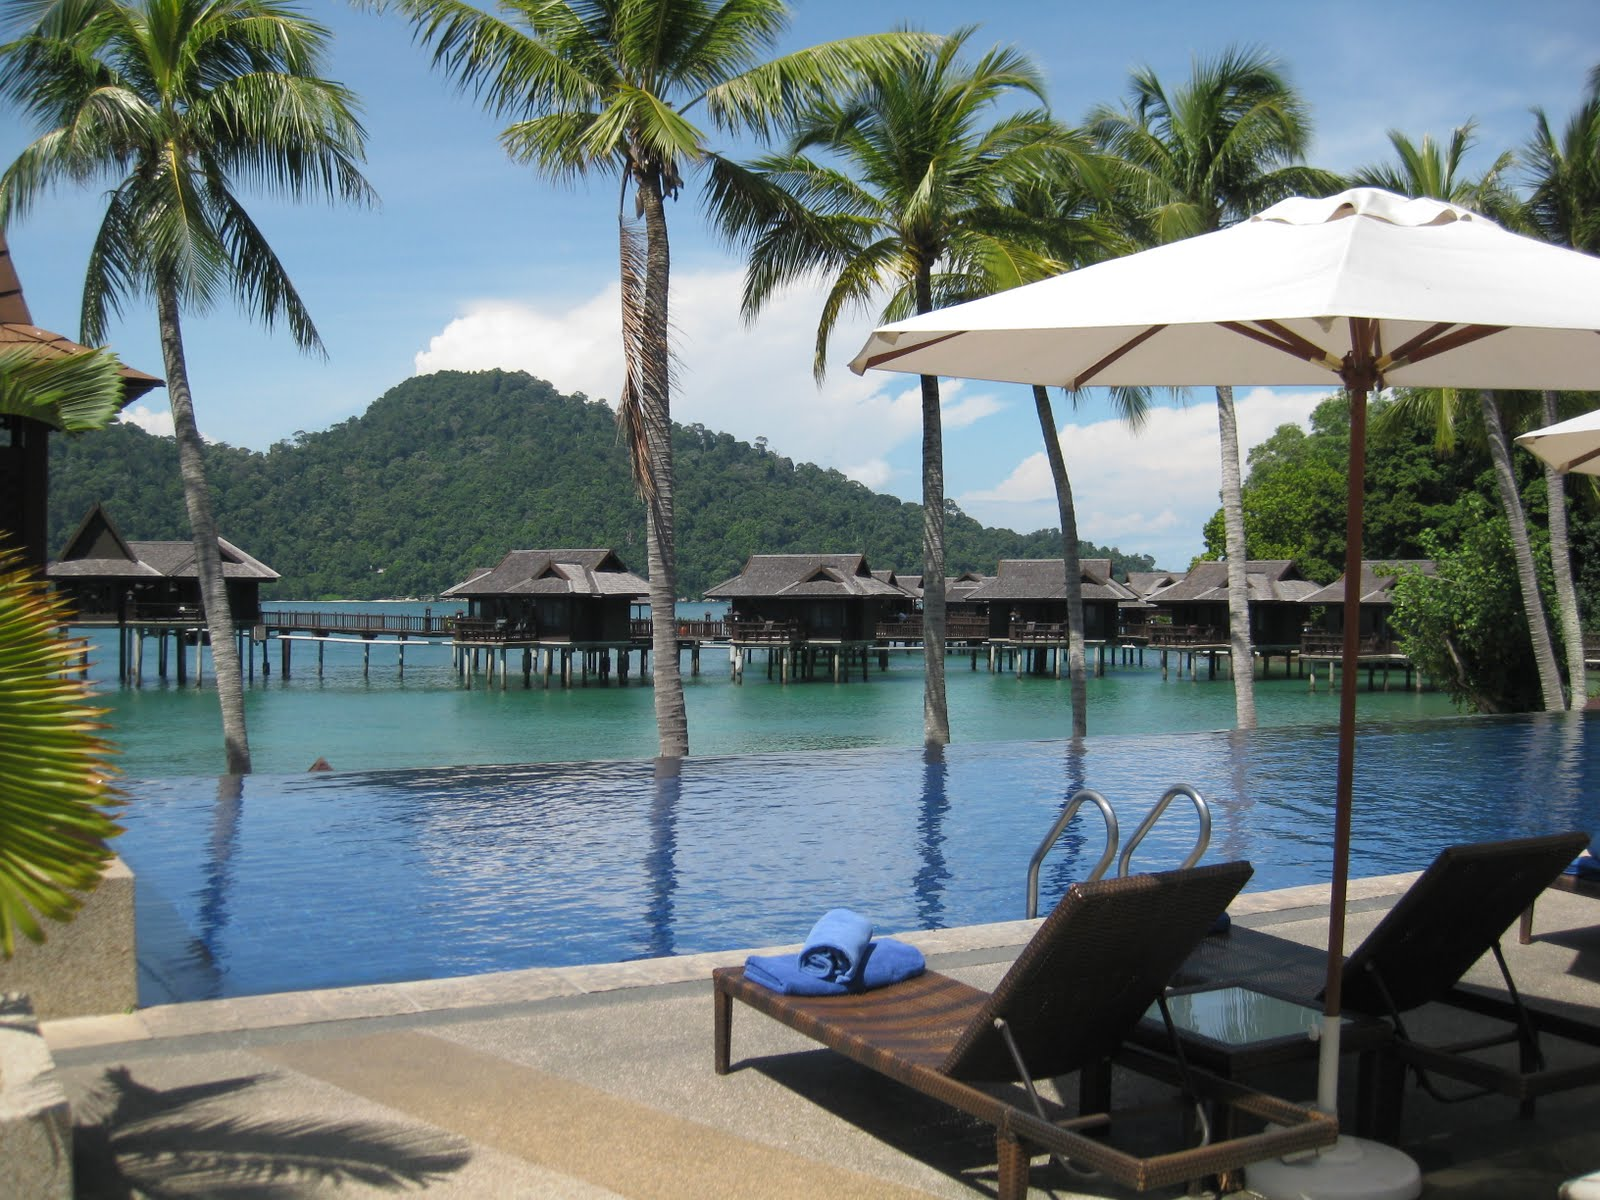 Pangkor Laut Resort is a peaceful paradise